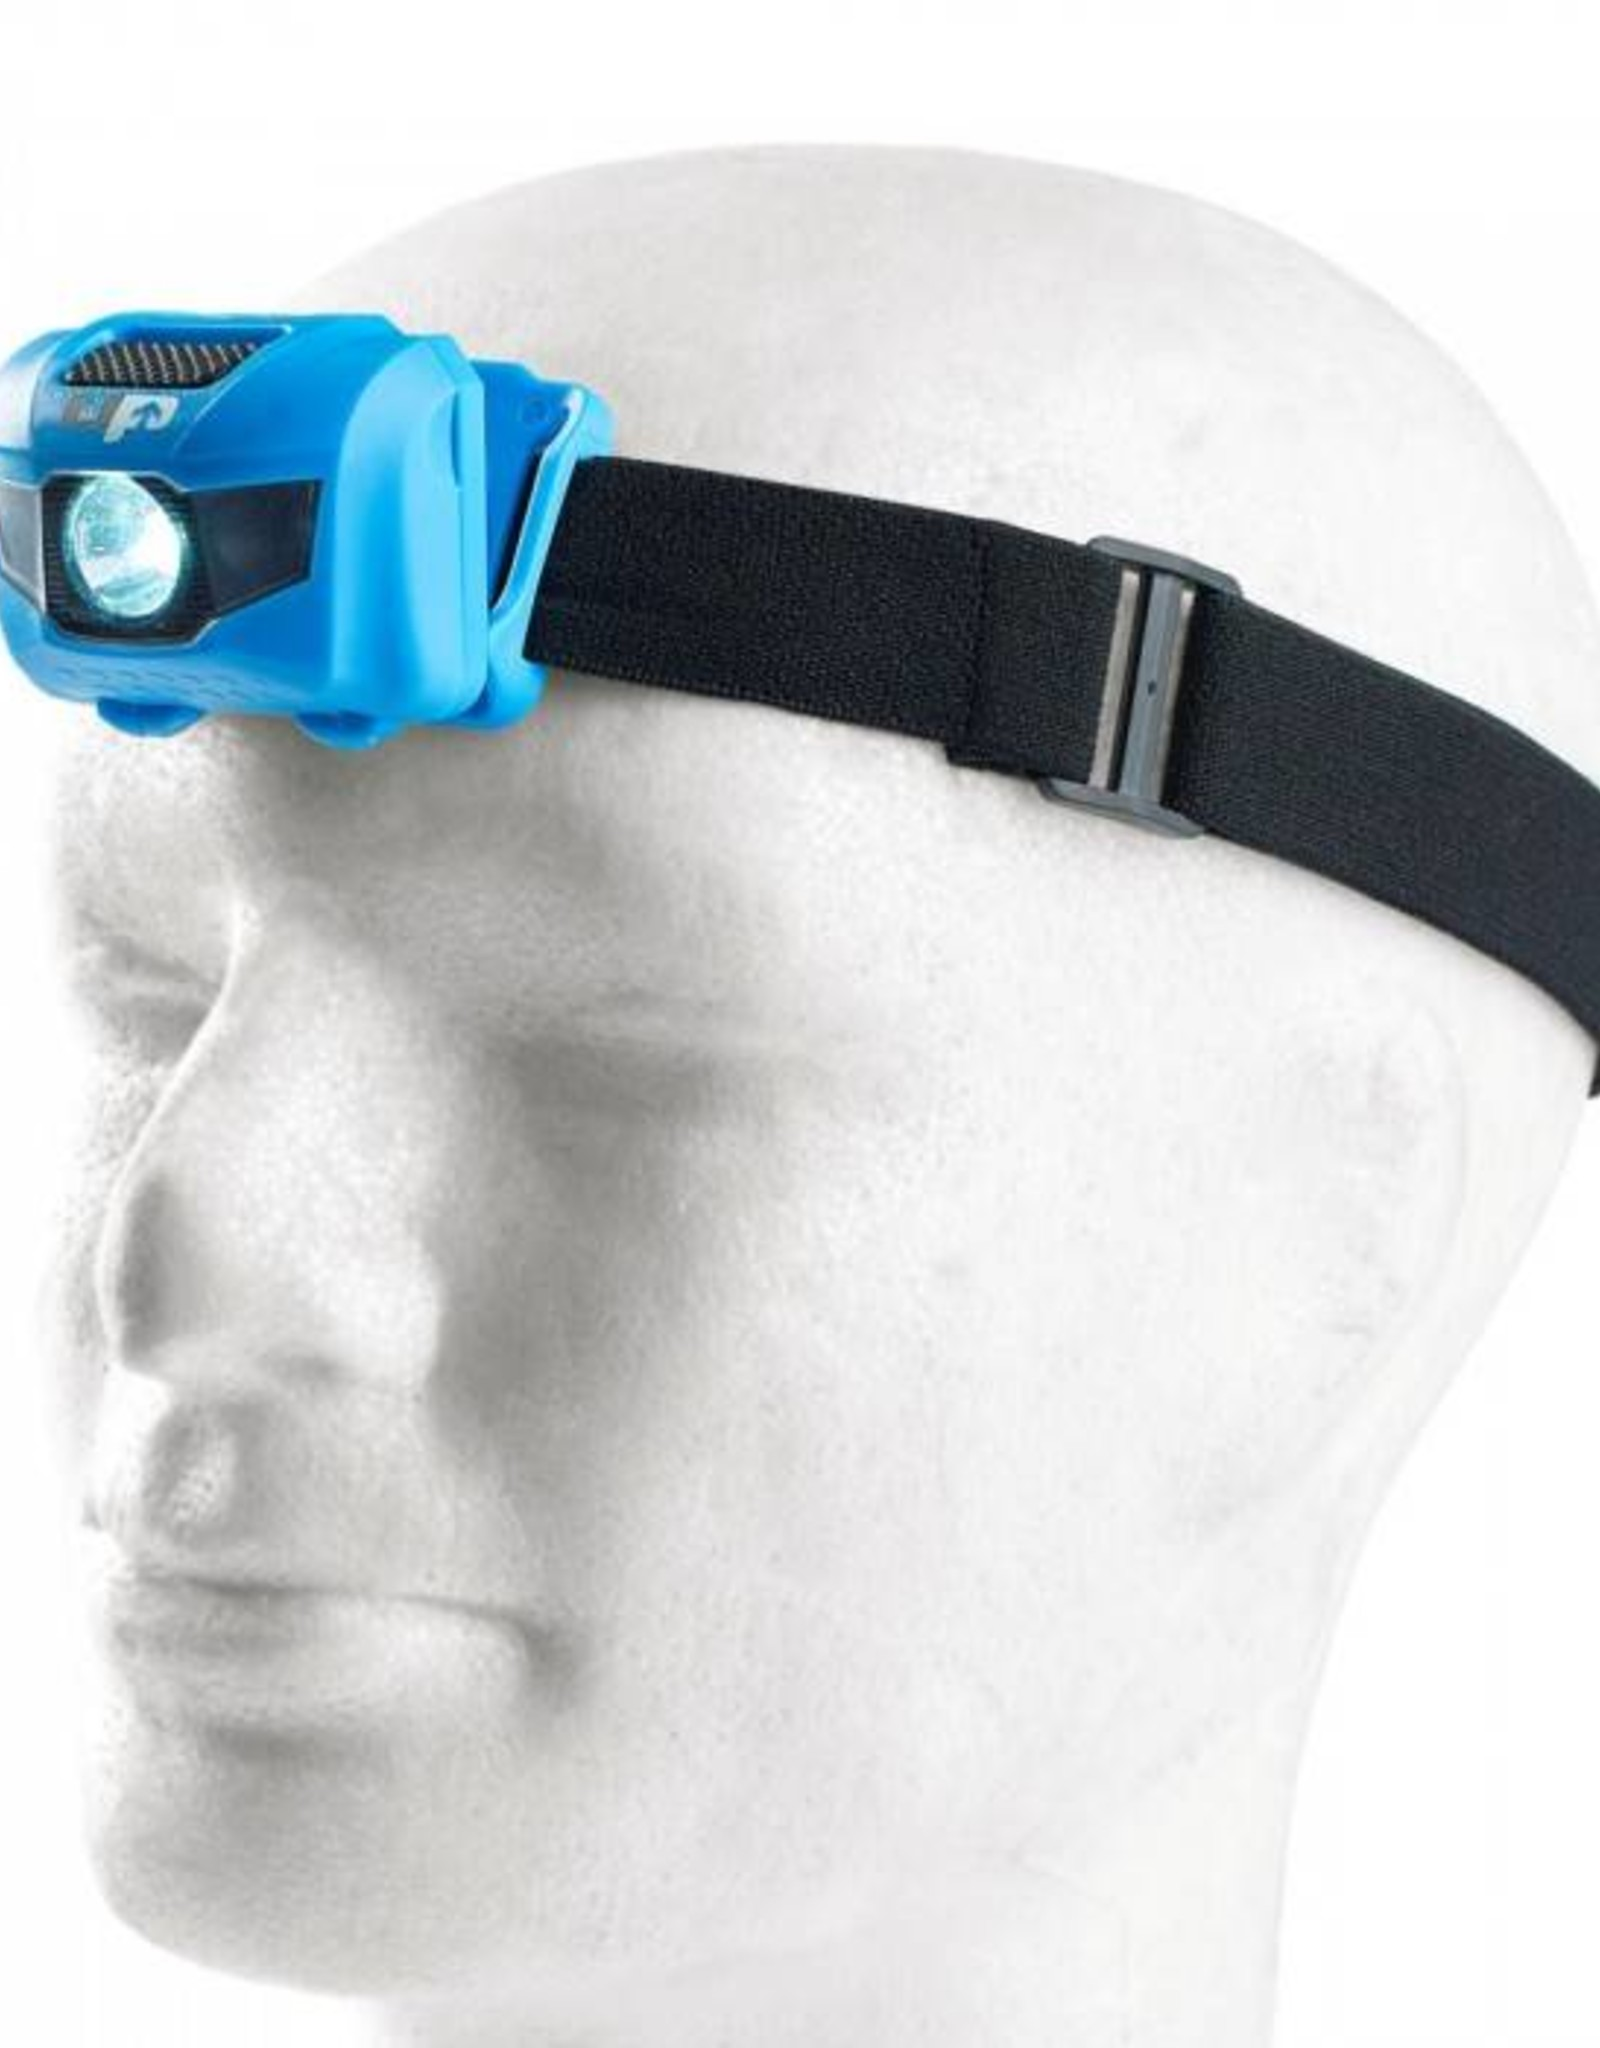 UP Ultimate Head Torch